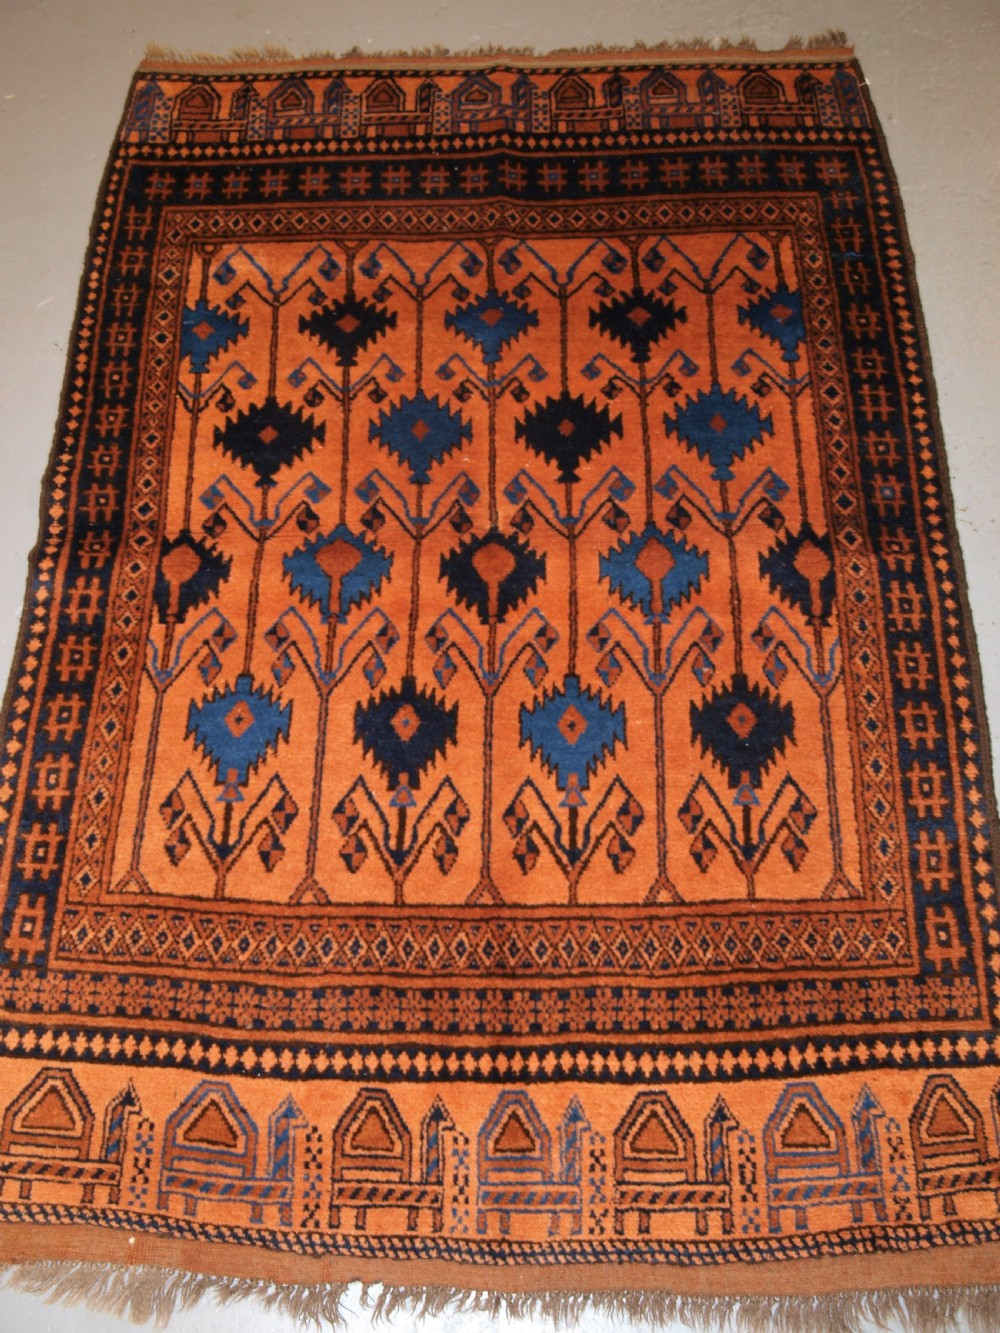 old afghan village rug of scarce camel and poppy design superb rug circa 1920